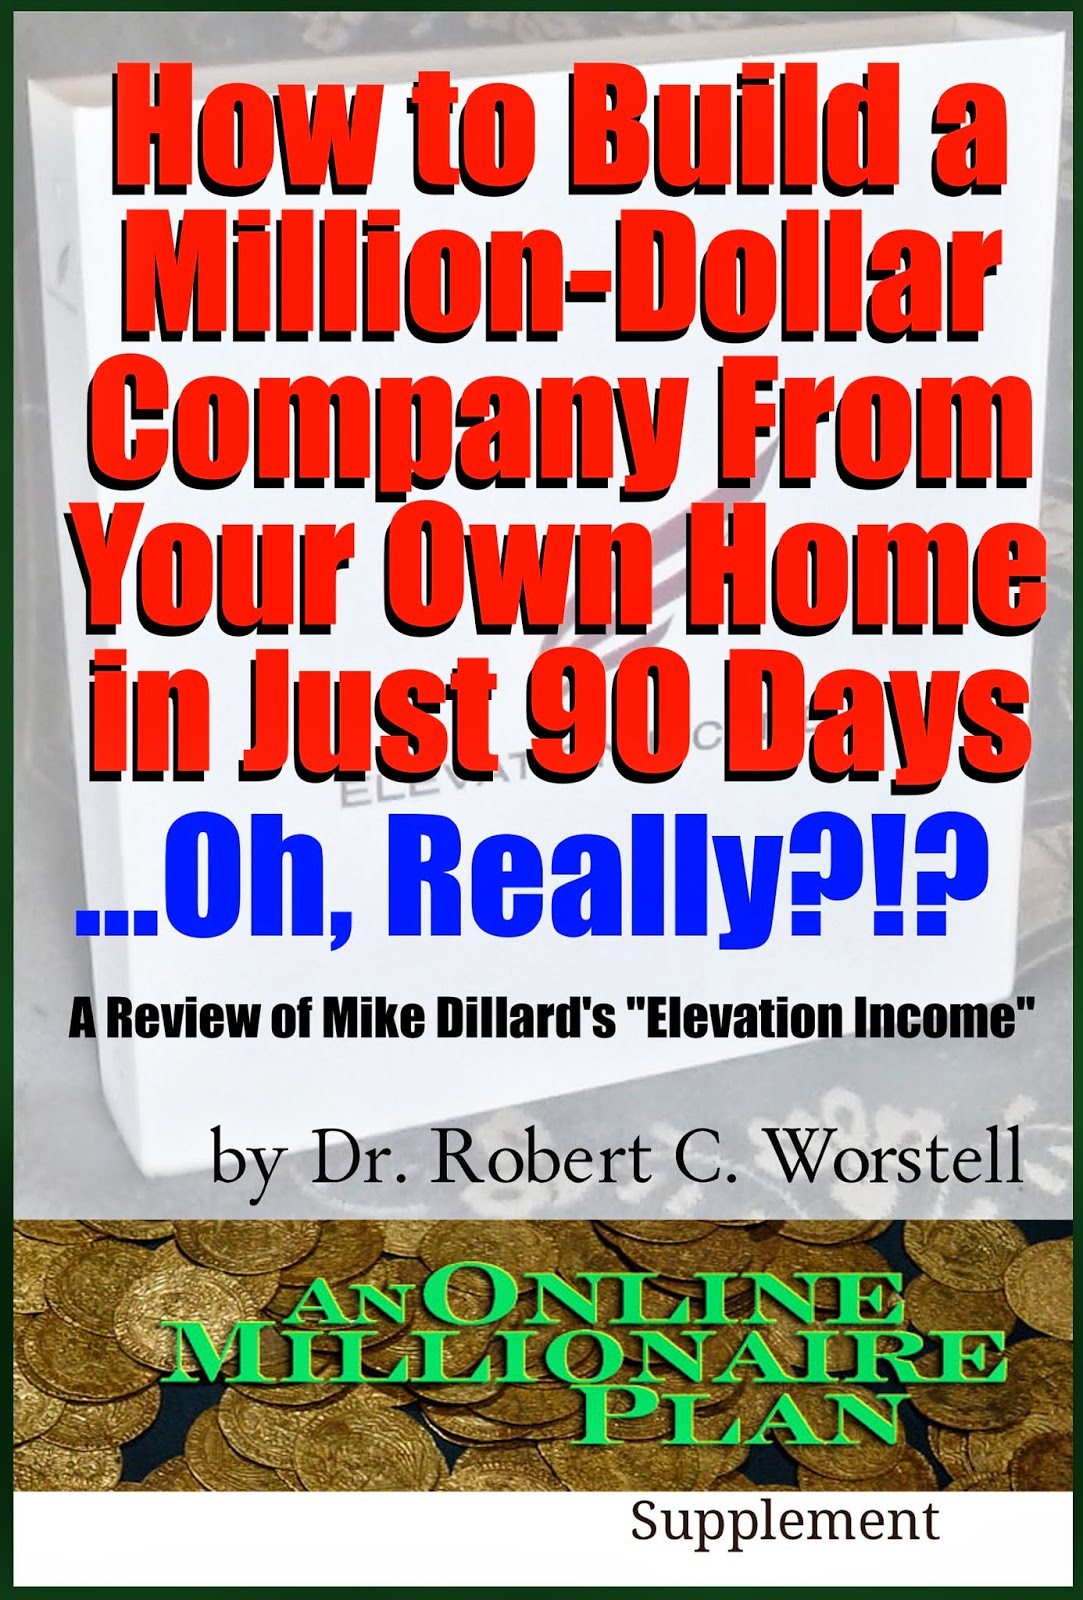 Mike Dillard's Elevation Income Review - How to Build a Million-Dollar Company from Your Own Home in Just 90 Days - Really?!?